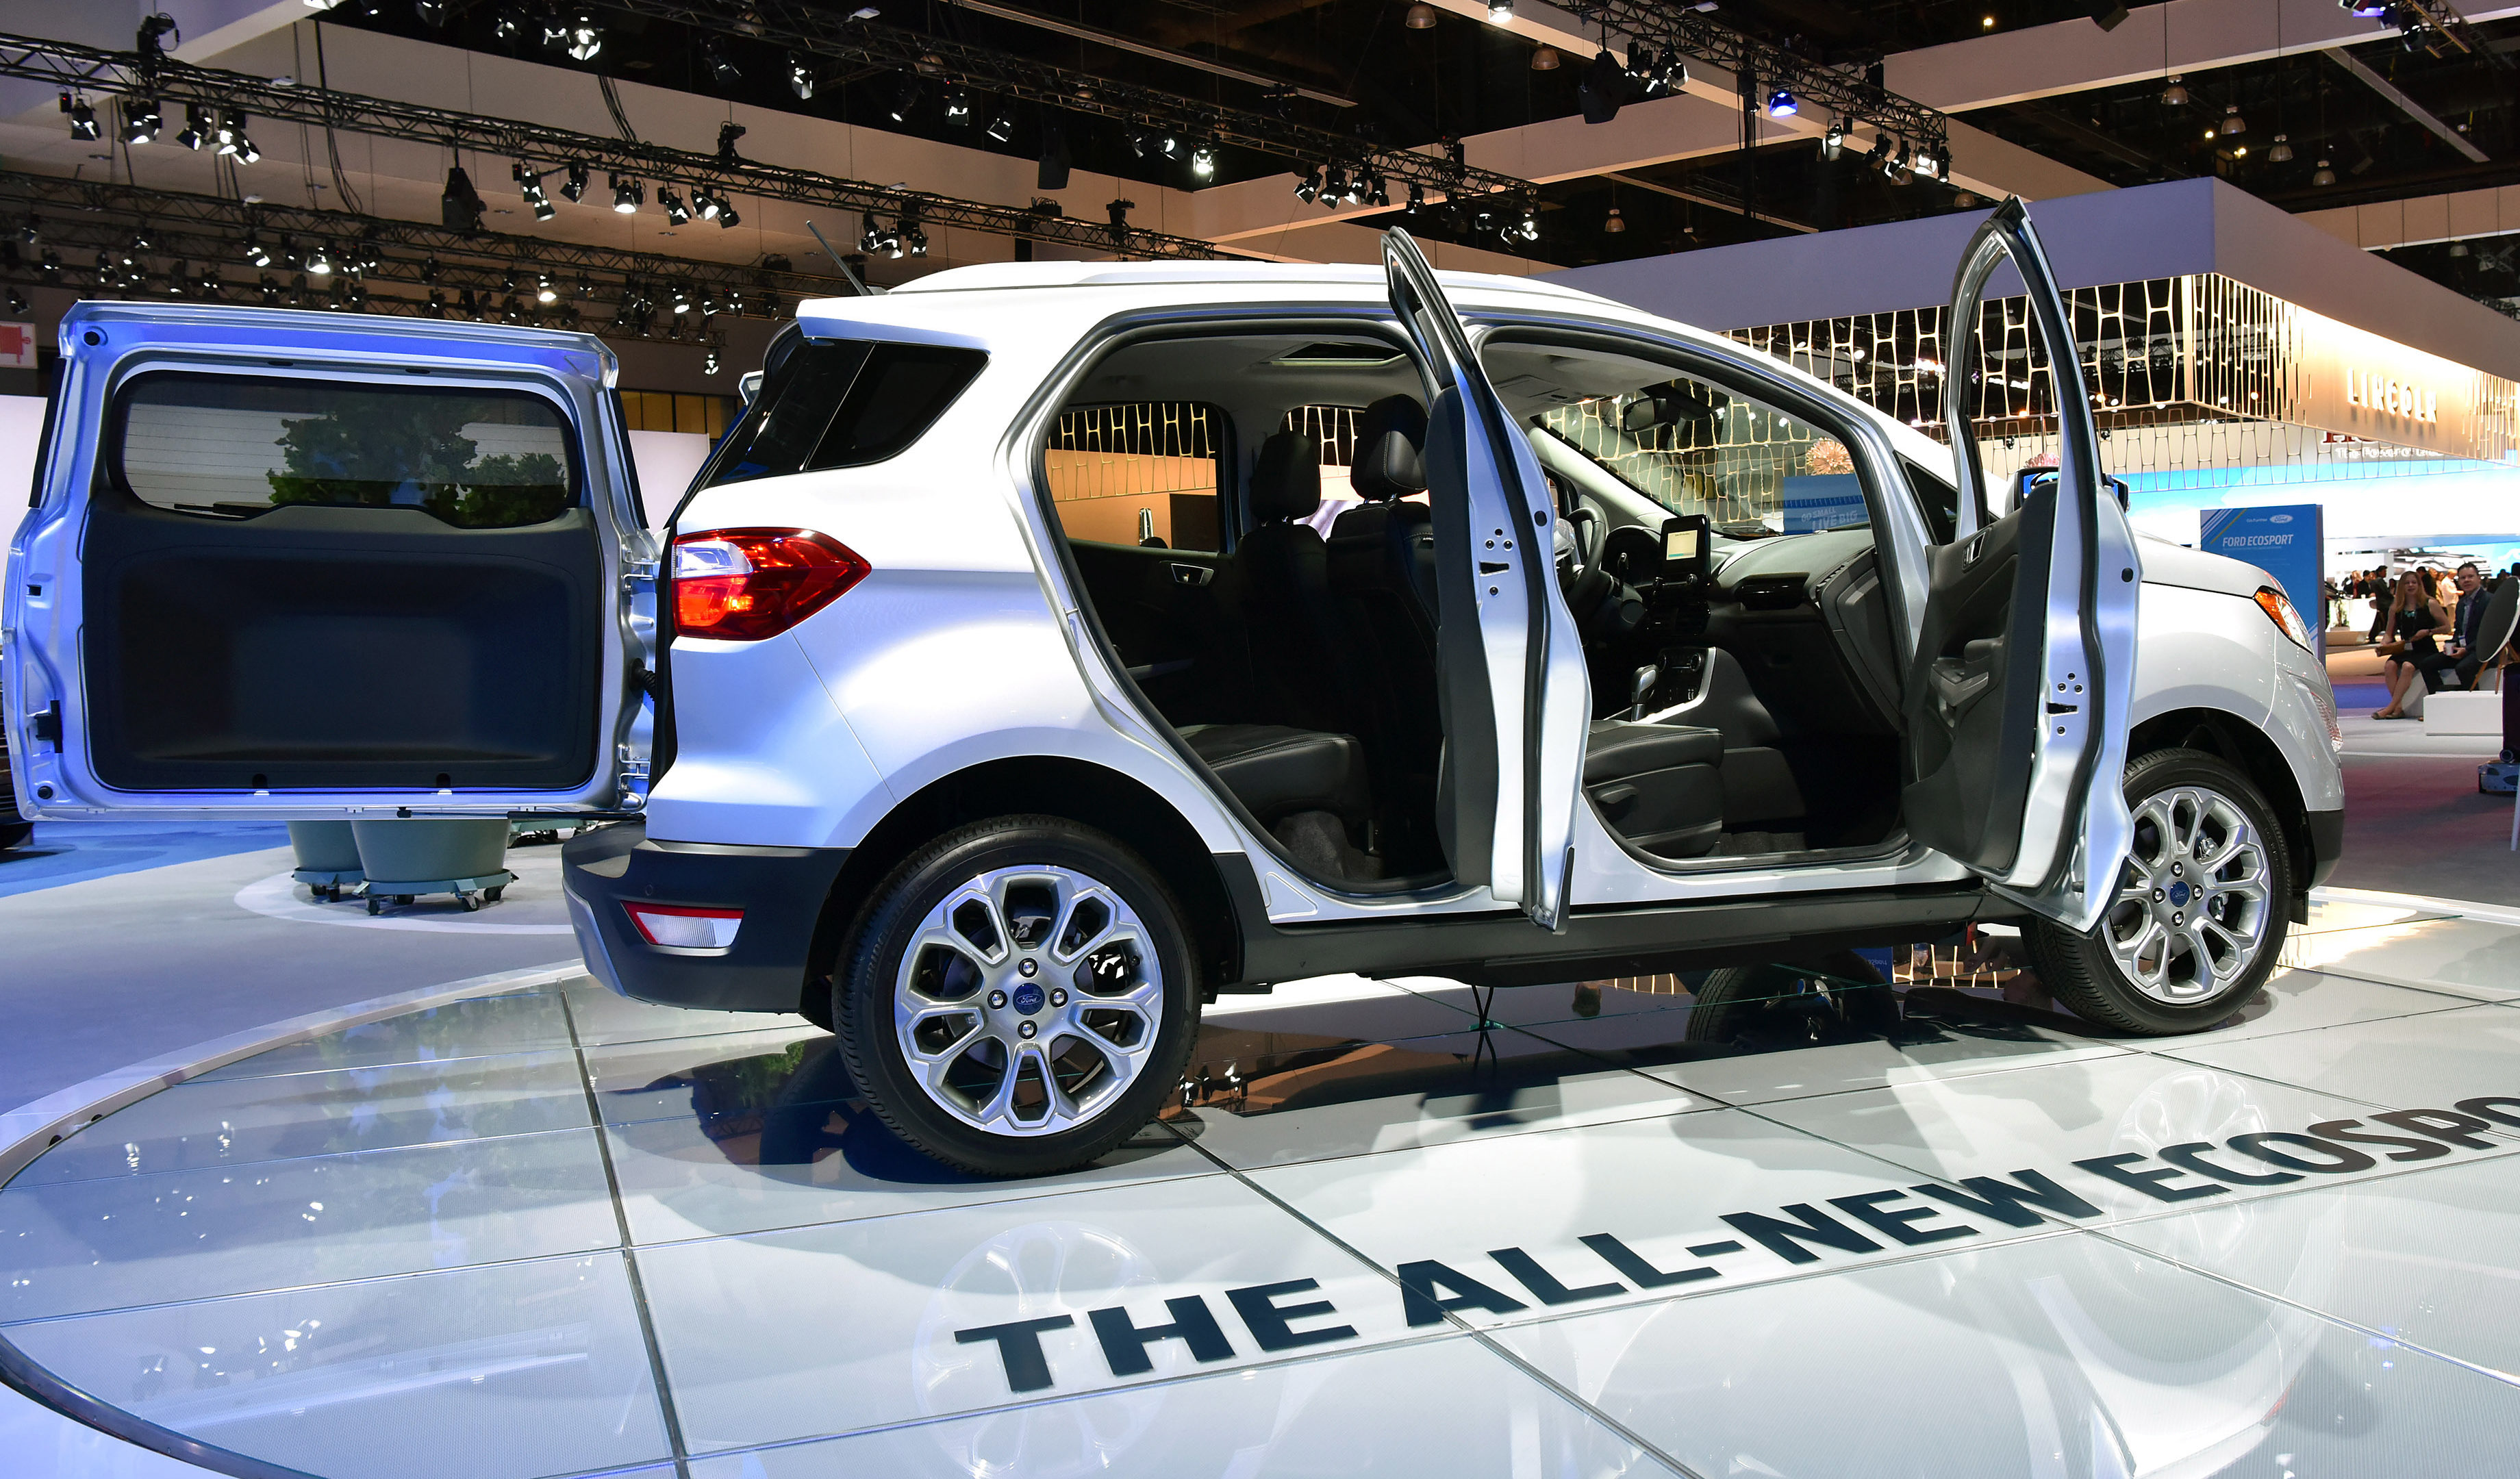 ford on target get a look at steel fender apron replacement on brand new ecosport repairer. Black Bedroom Furniture Sets. Home Design Ideas